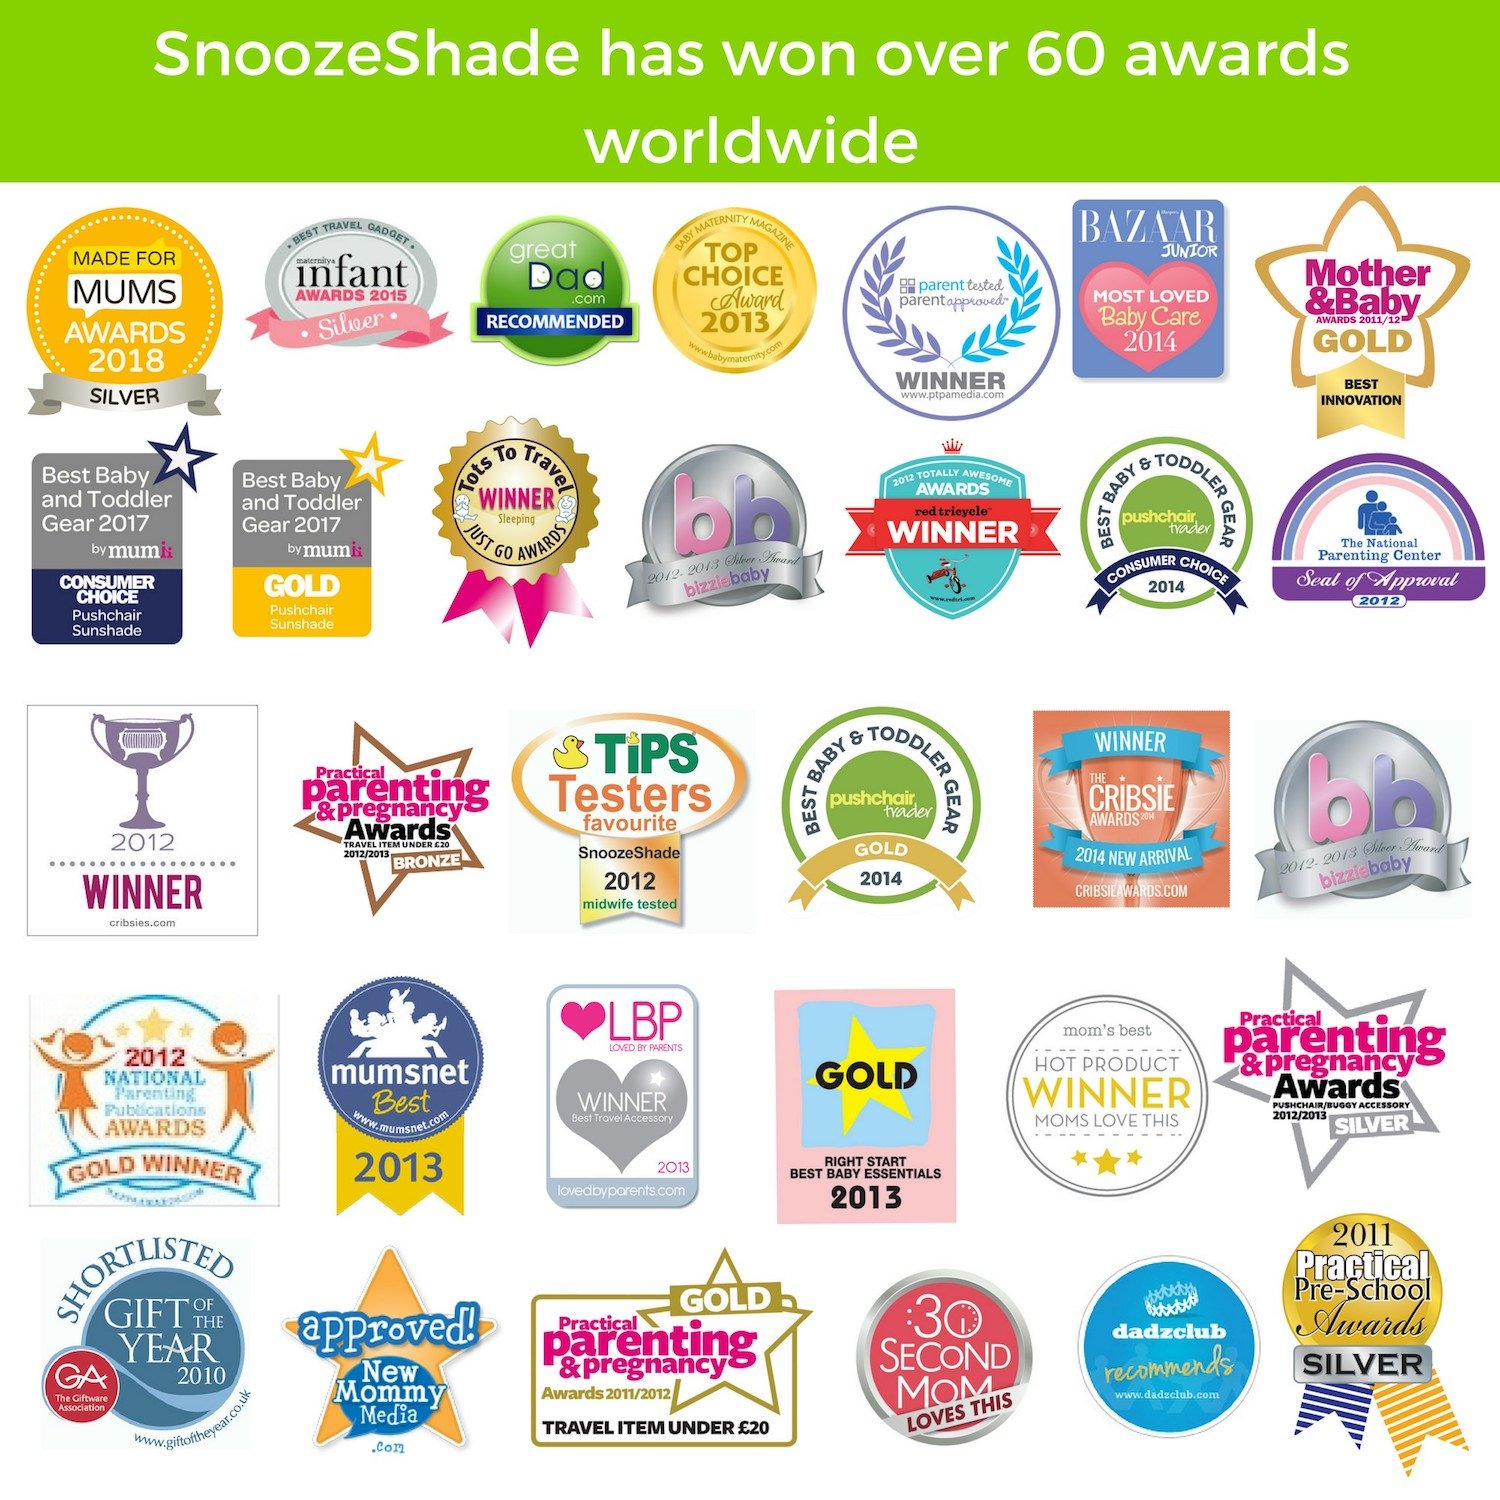 Double Stroller Cover & Sun Shade | Award-Winning Blackout Blind and Baby Sleep Aid | Stops 99% of The Sun's Rays | Lets Your Babies nap Safely Anywhere | Universal Fit | SnoozeShade Twin by SnoozeShade (Image #7)